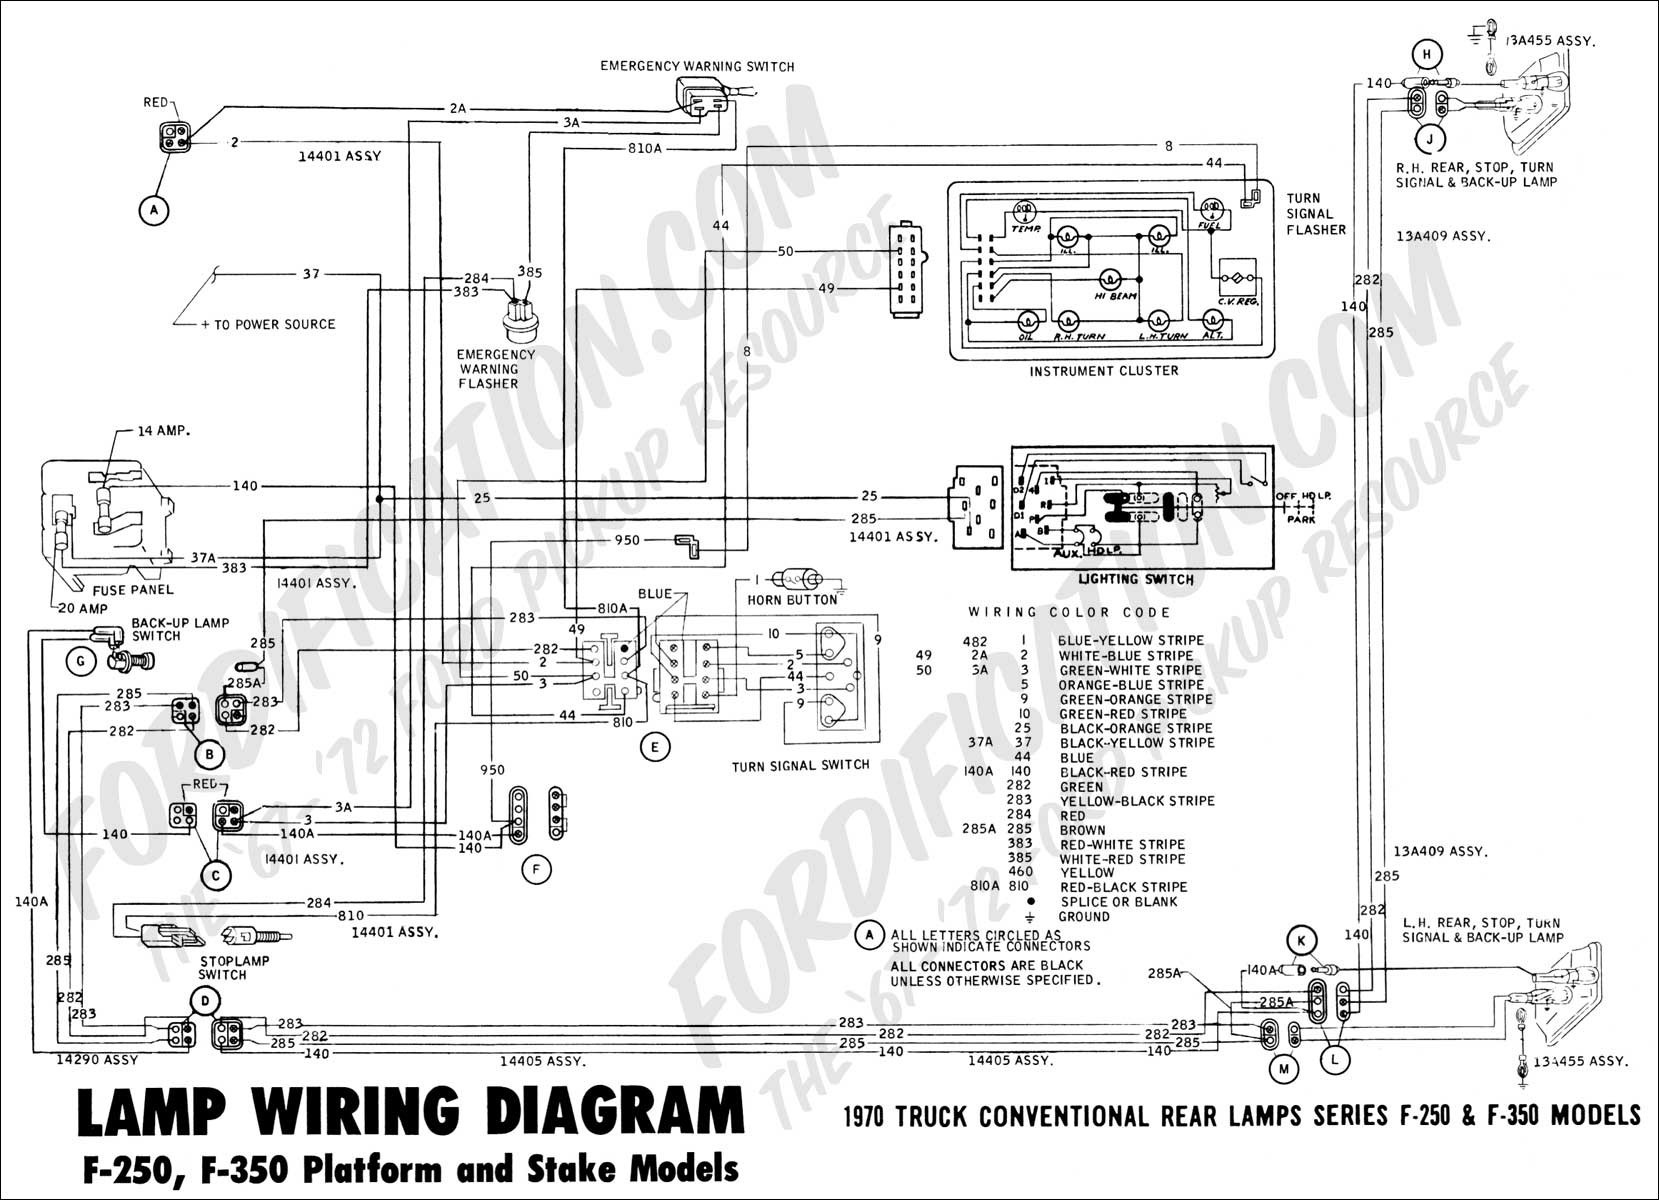 2006 Ford F 250 Van Fuse Diagram Wiring Library F250 Info Of Tail Related Post